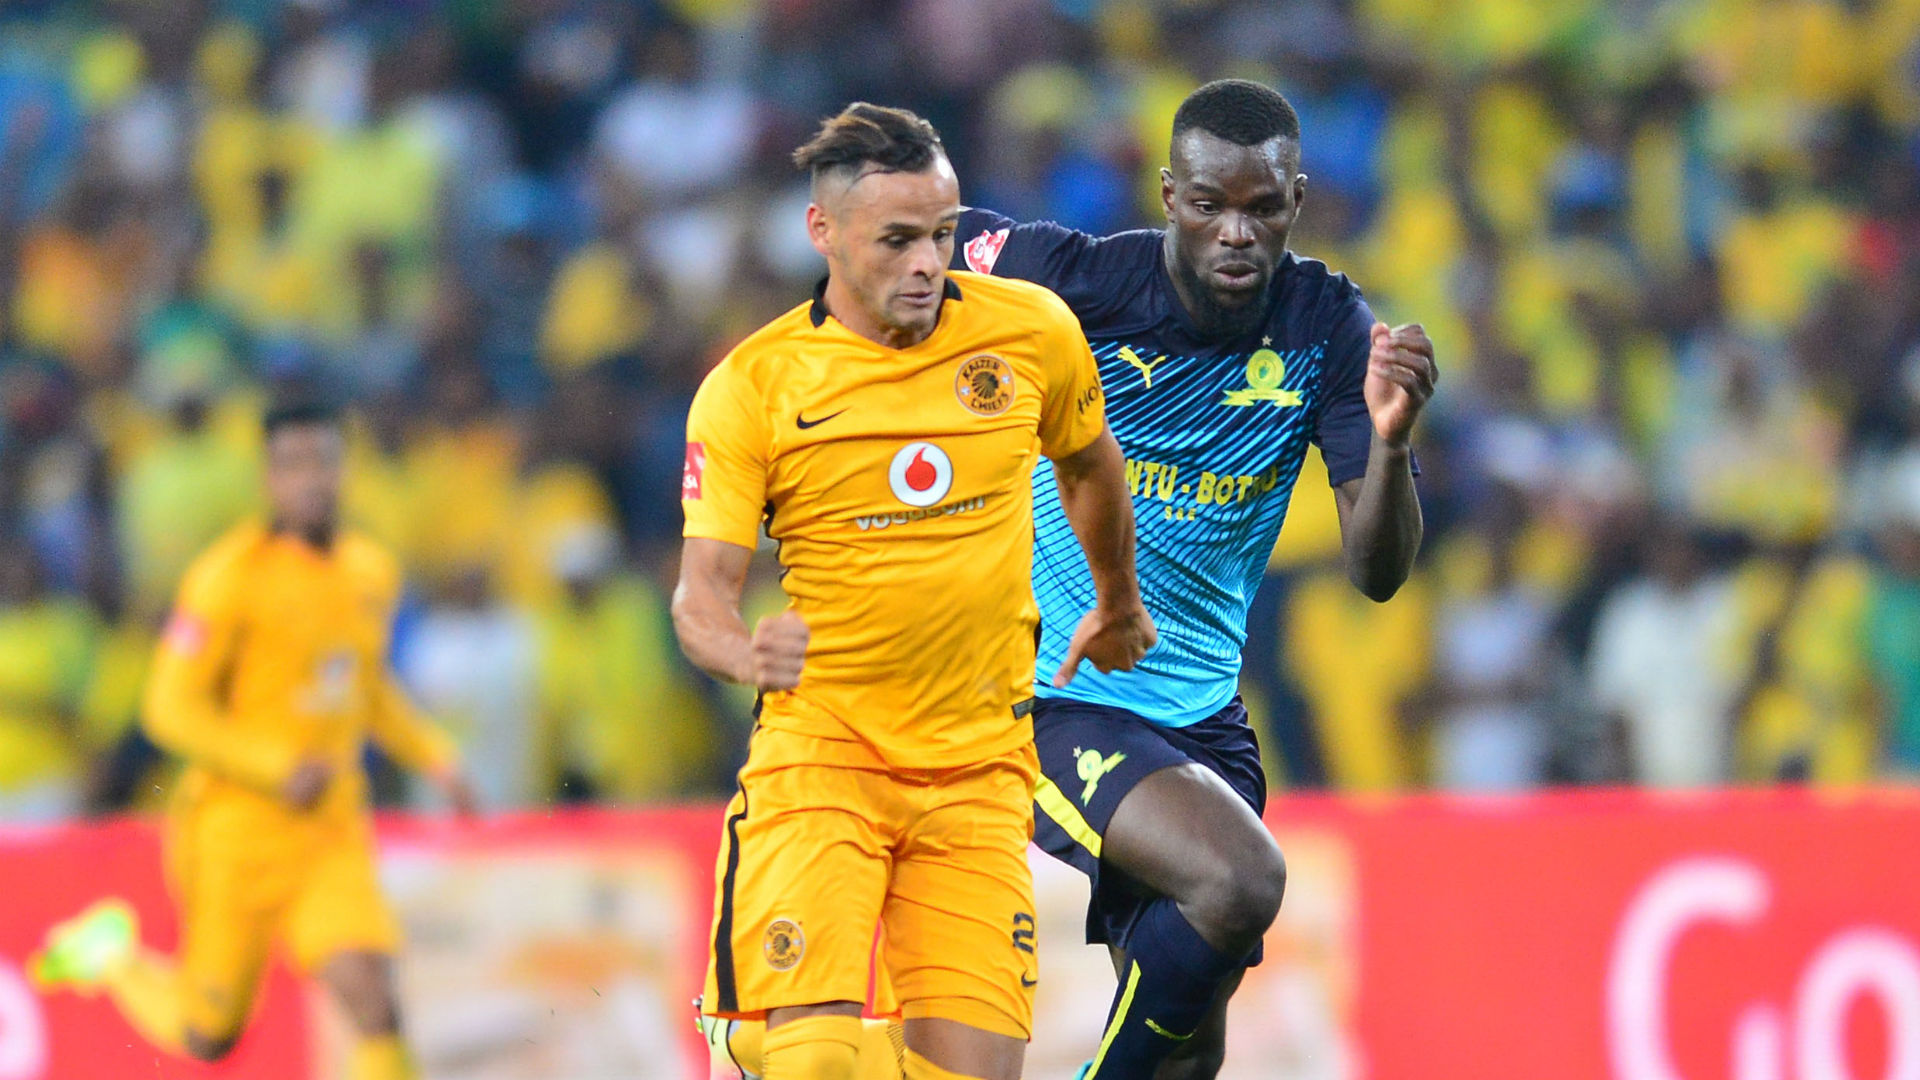 Kaizer Chiefs: Kaizer Chiefs V Sundowns: Where And How Can I Watch The